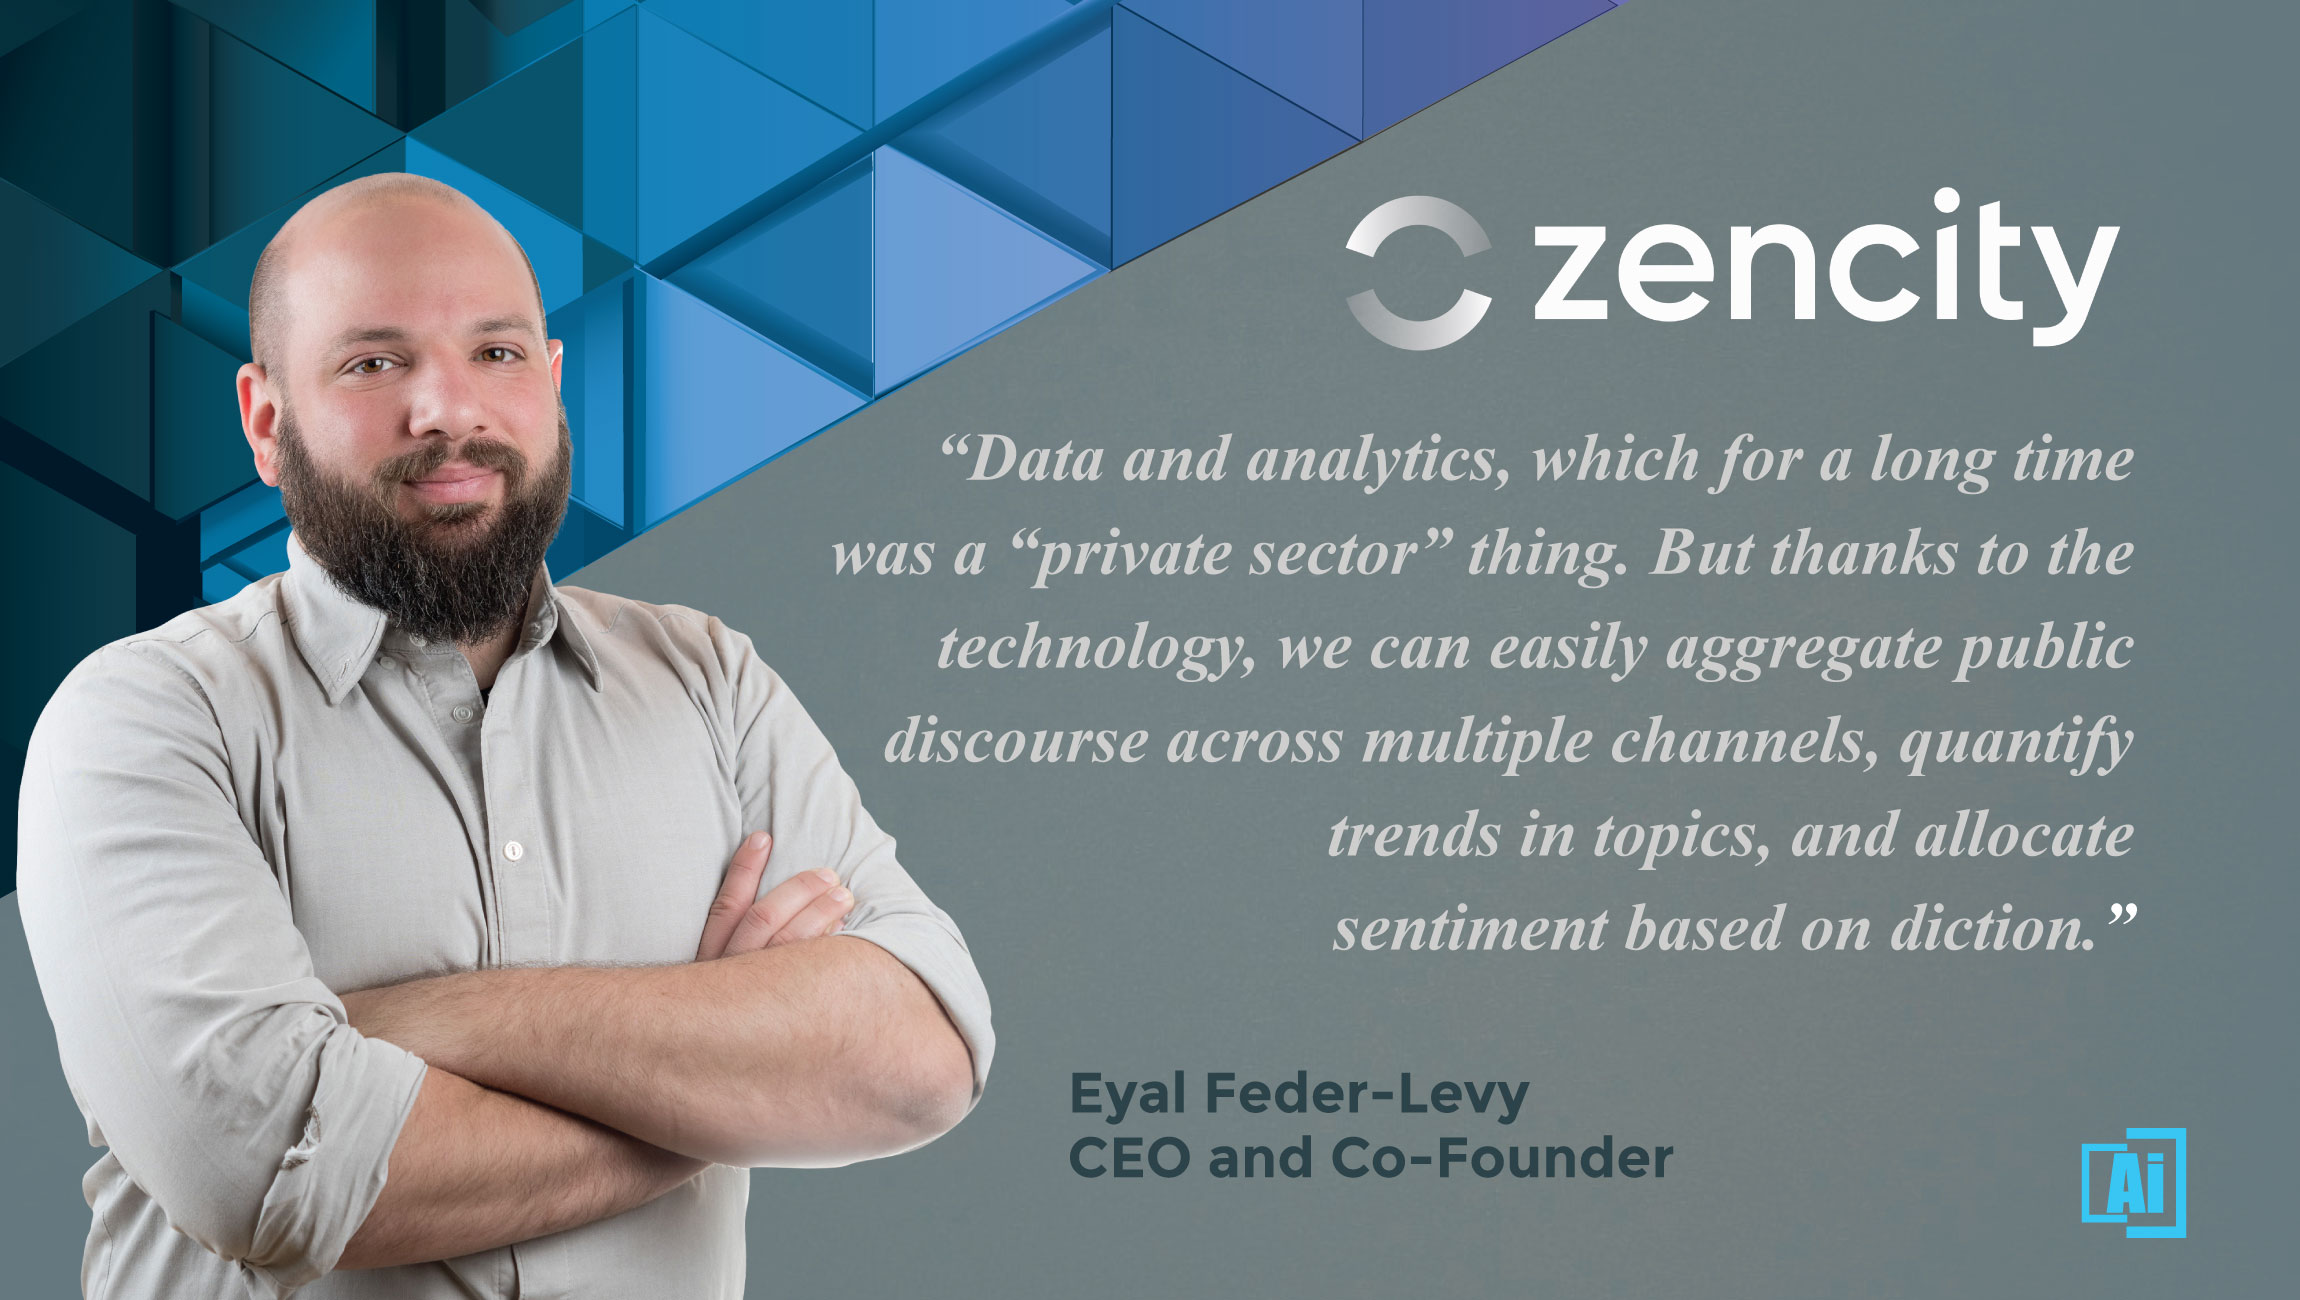 Eyal Feder-Levy, CEO and Co-Founder at Zencity